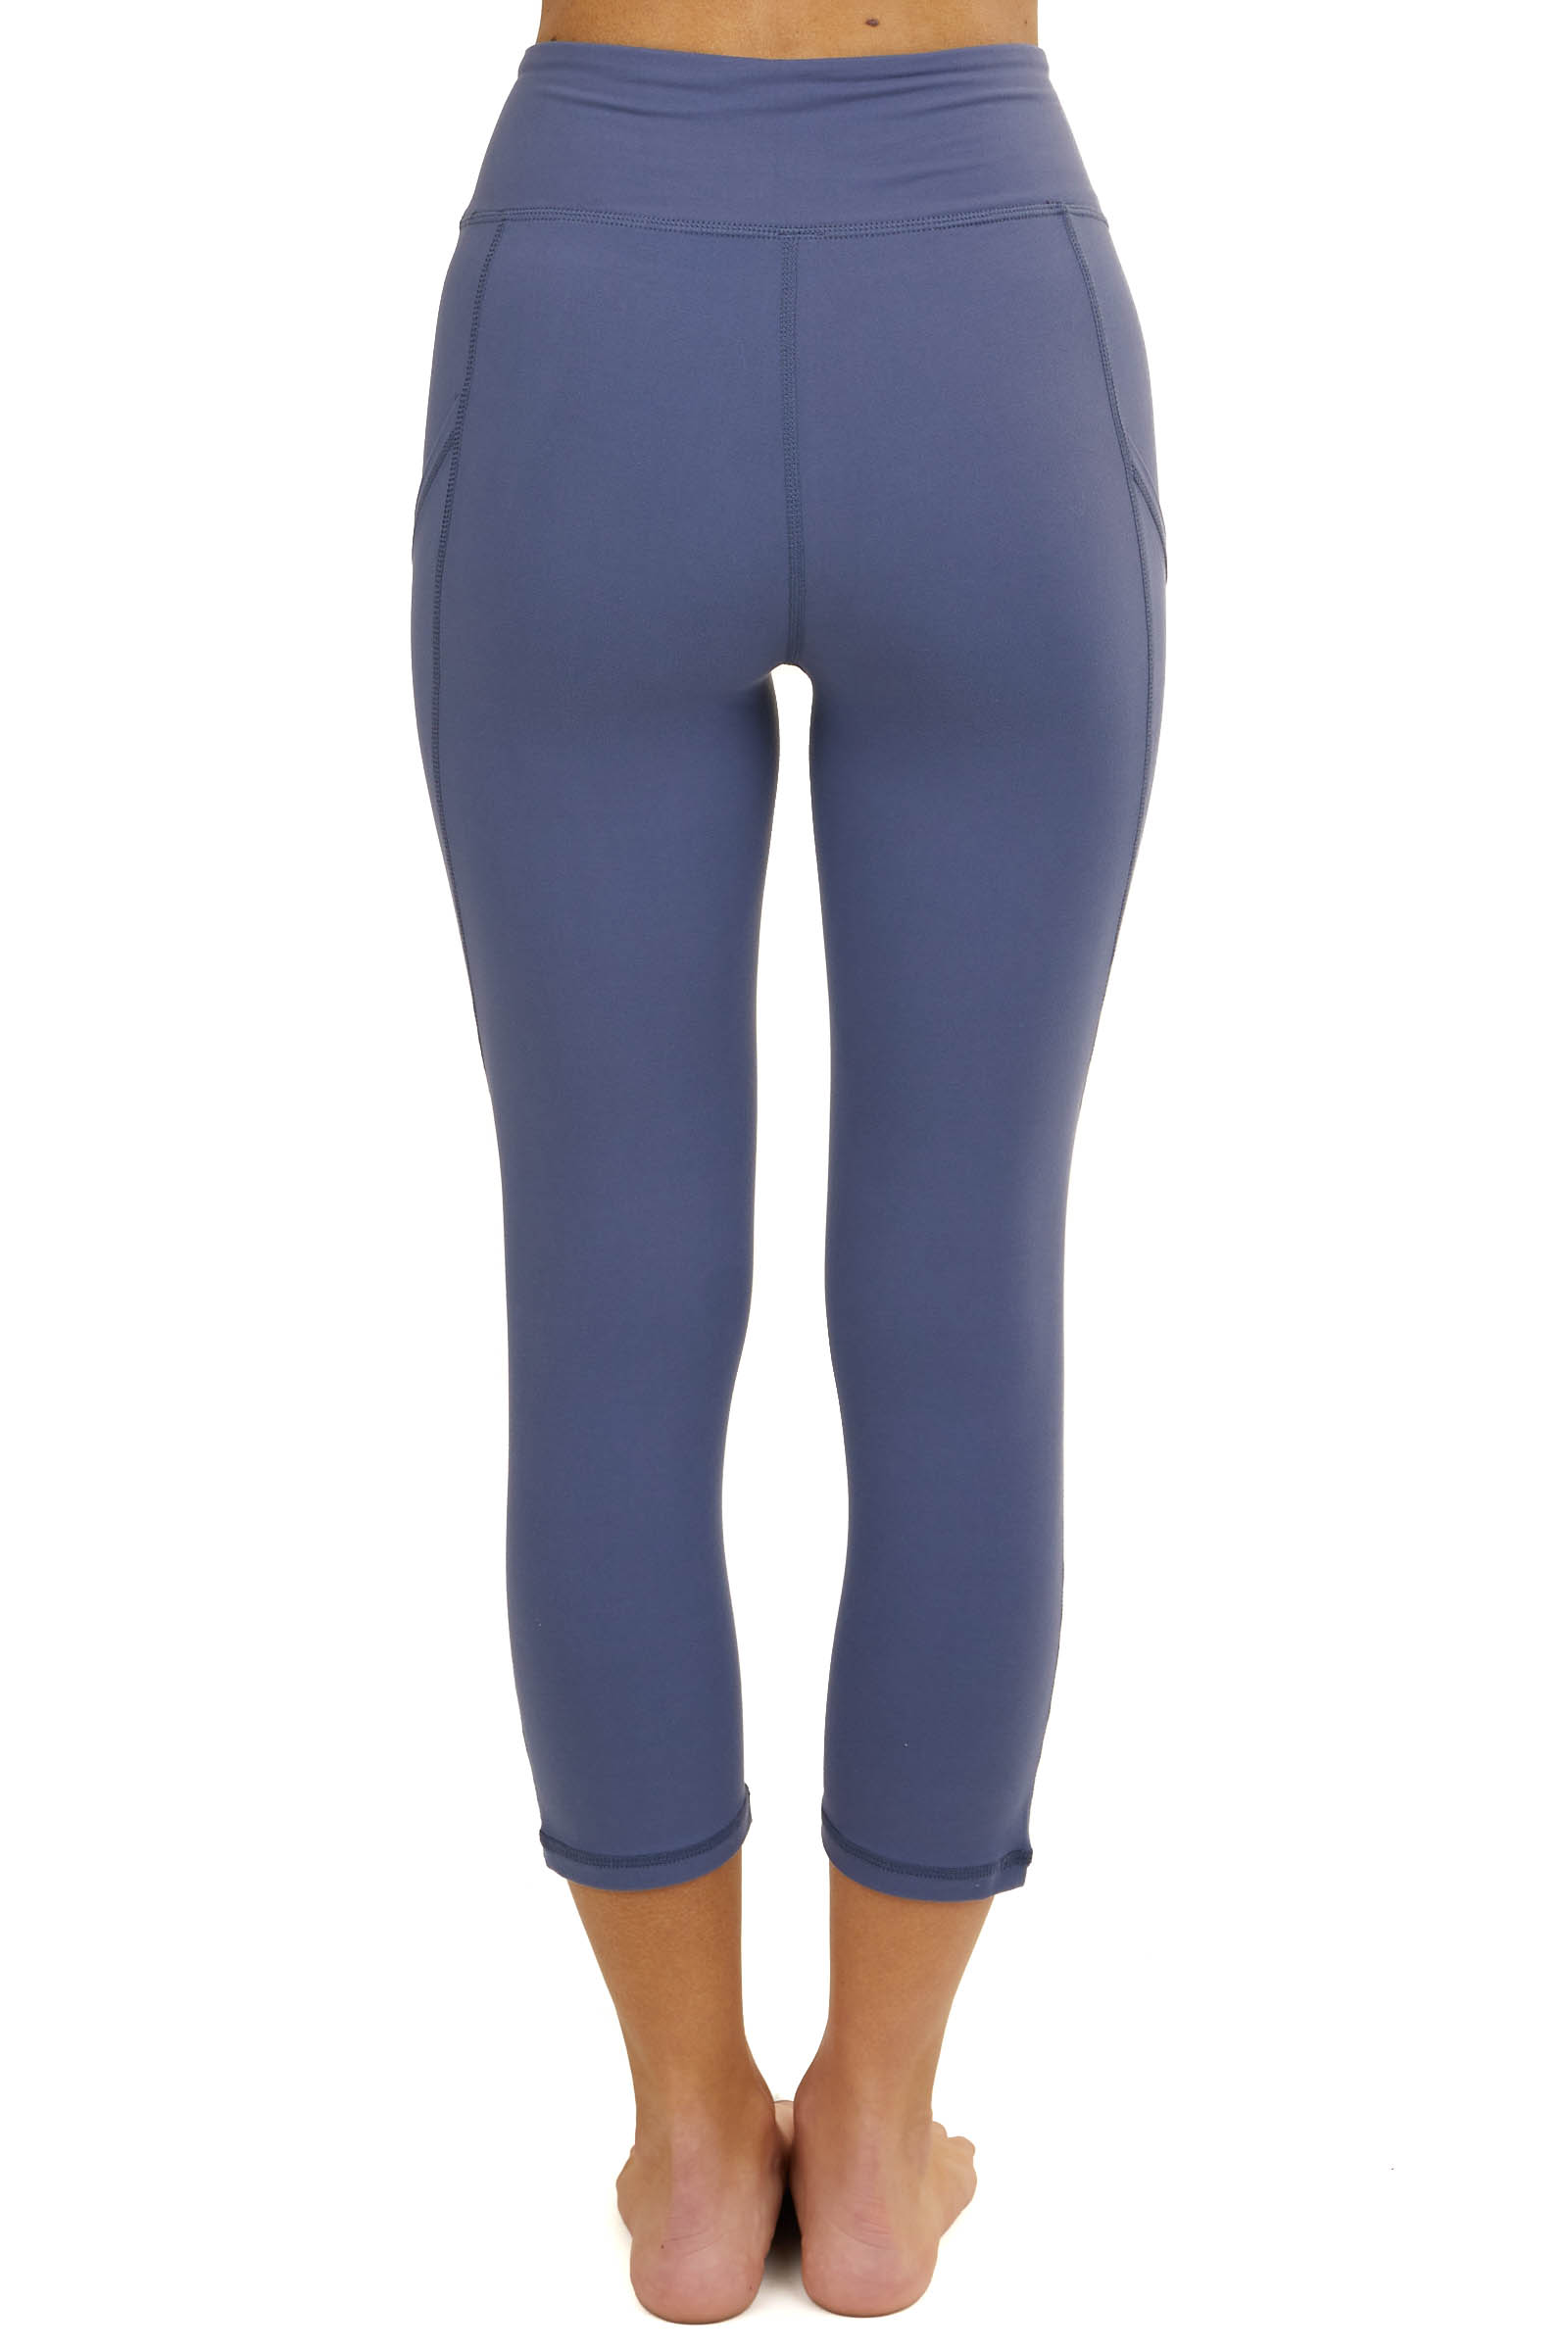 Dusty Blue Soft Stretchy Capri Length Leggings with Pockets